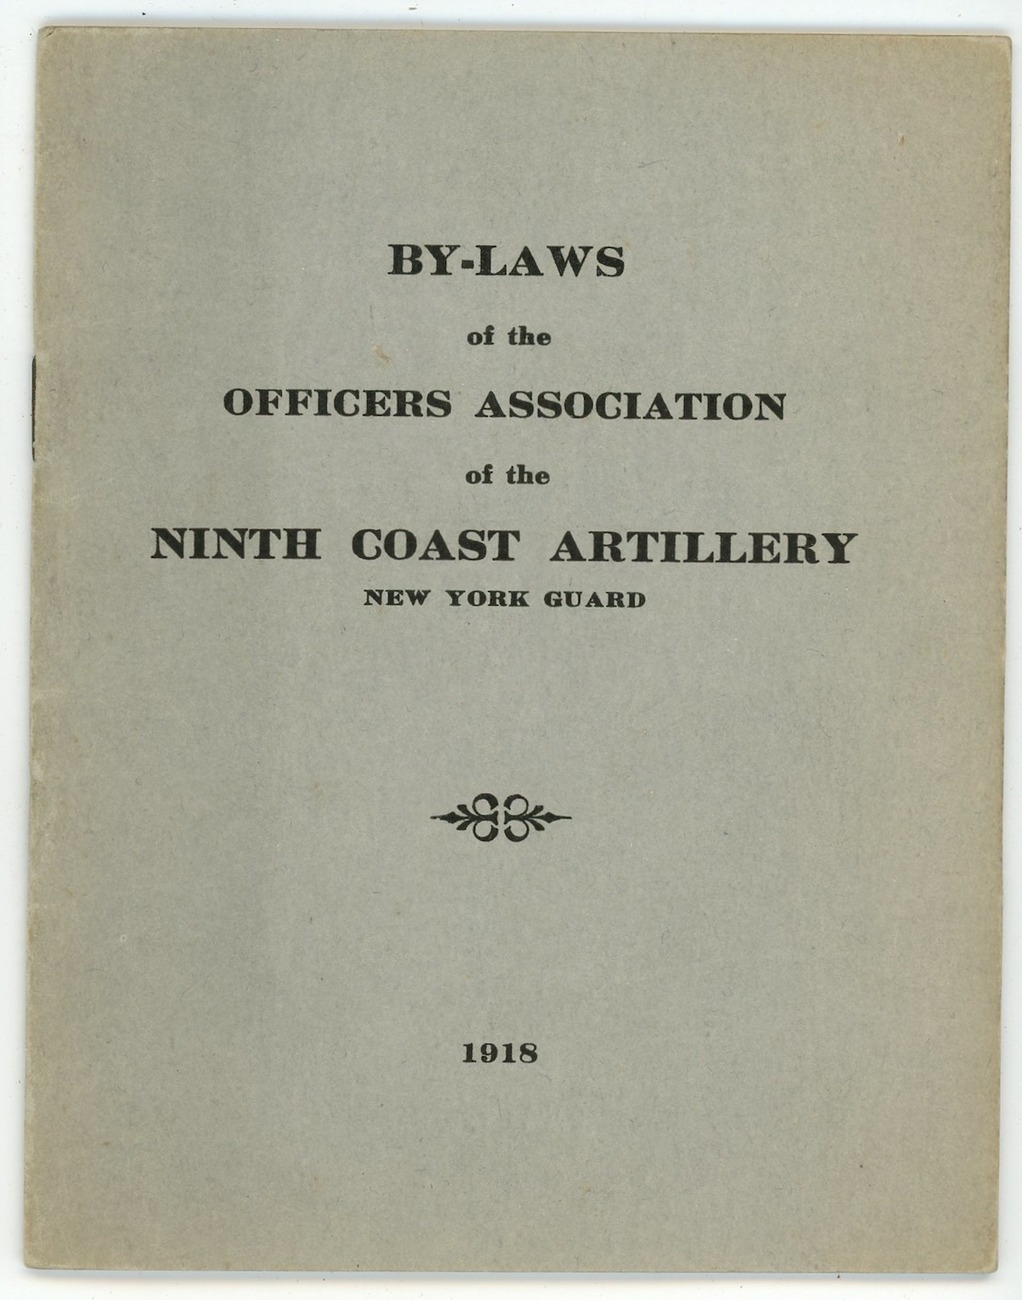 By Laws Officers Assoc Ninth Coast Artillery NY 1918 WWI booklet vintage